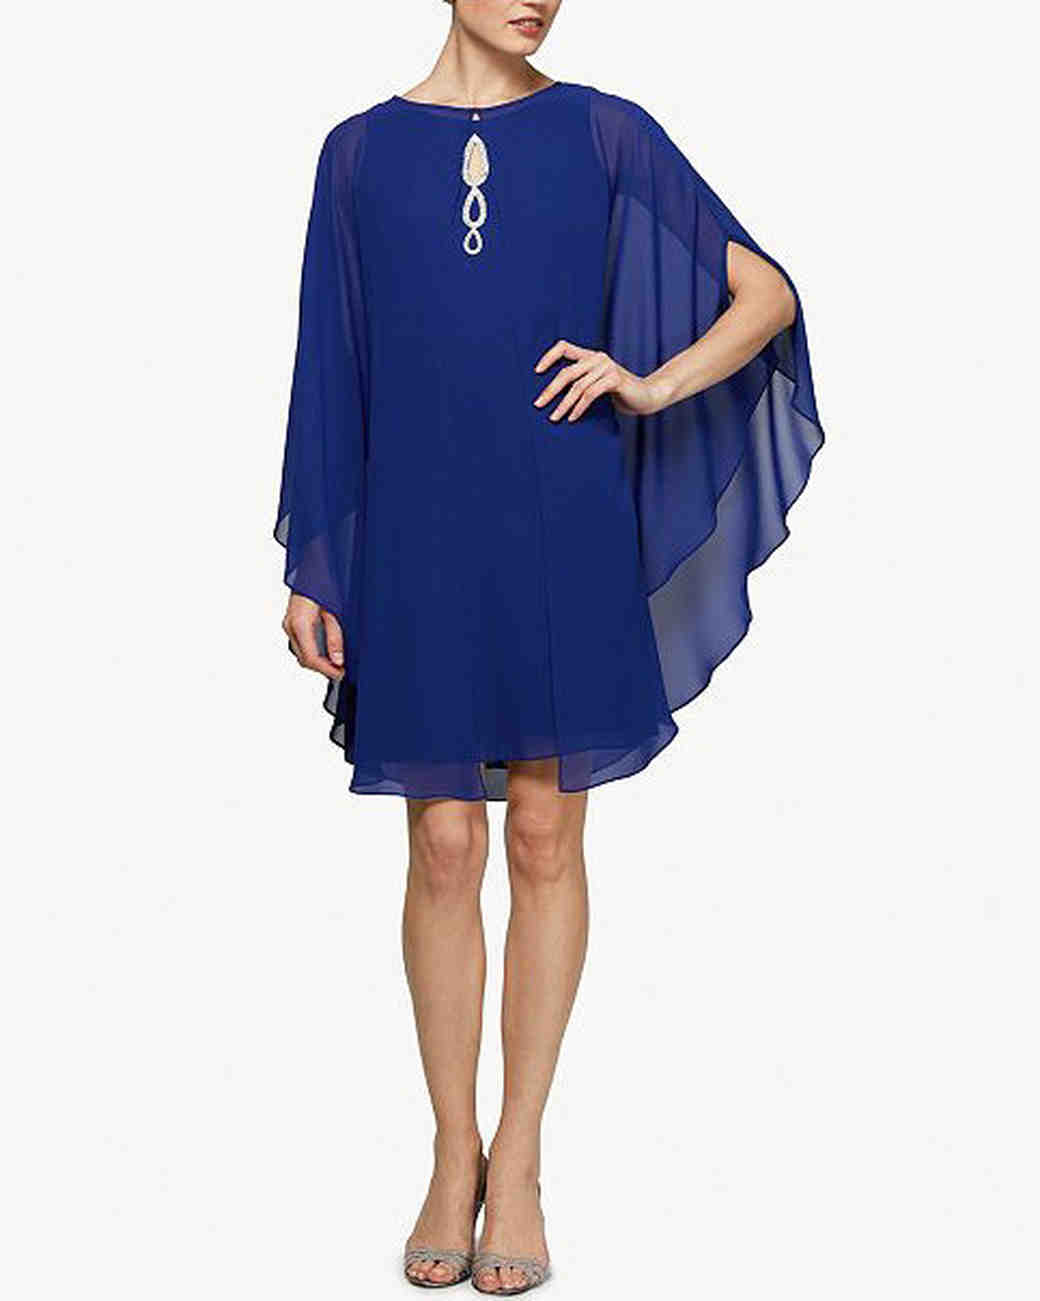 mother of the bride dress blue embellished capelet dress